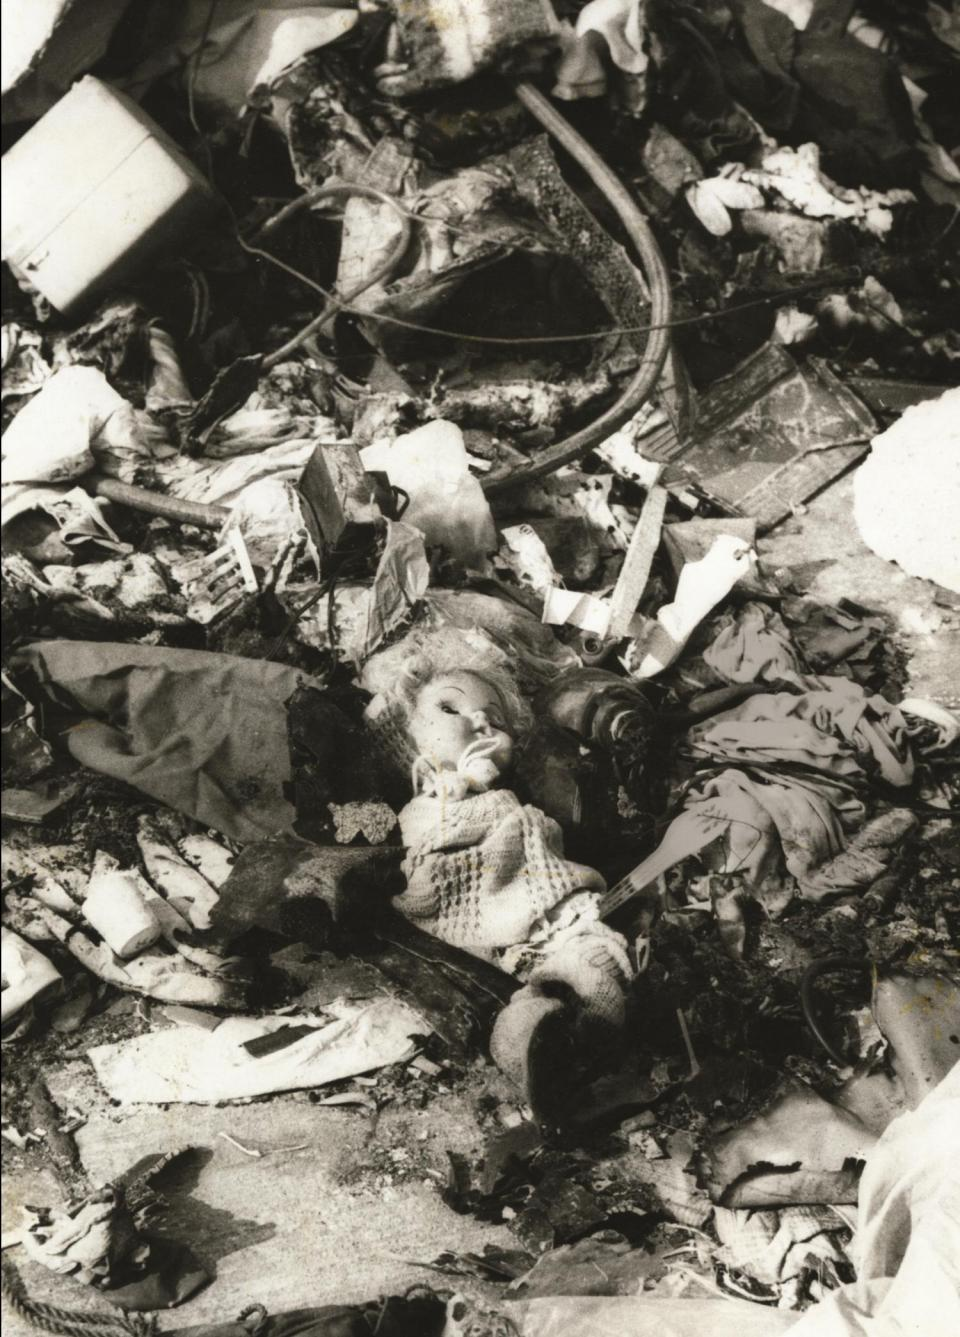 A doll lies among the burnt wreckage.